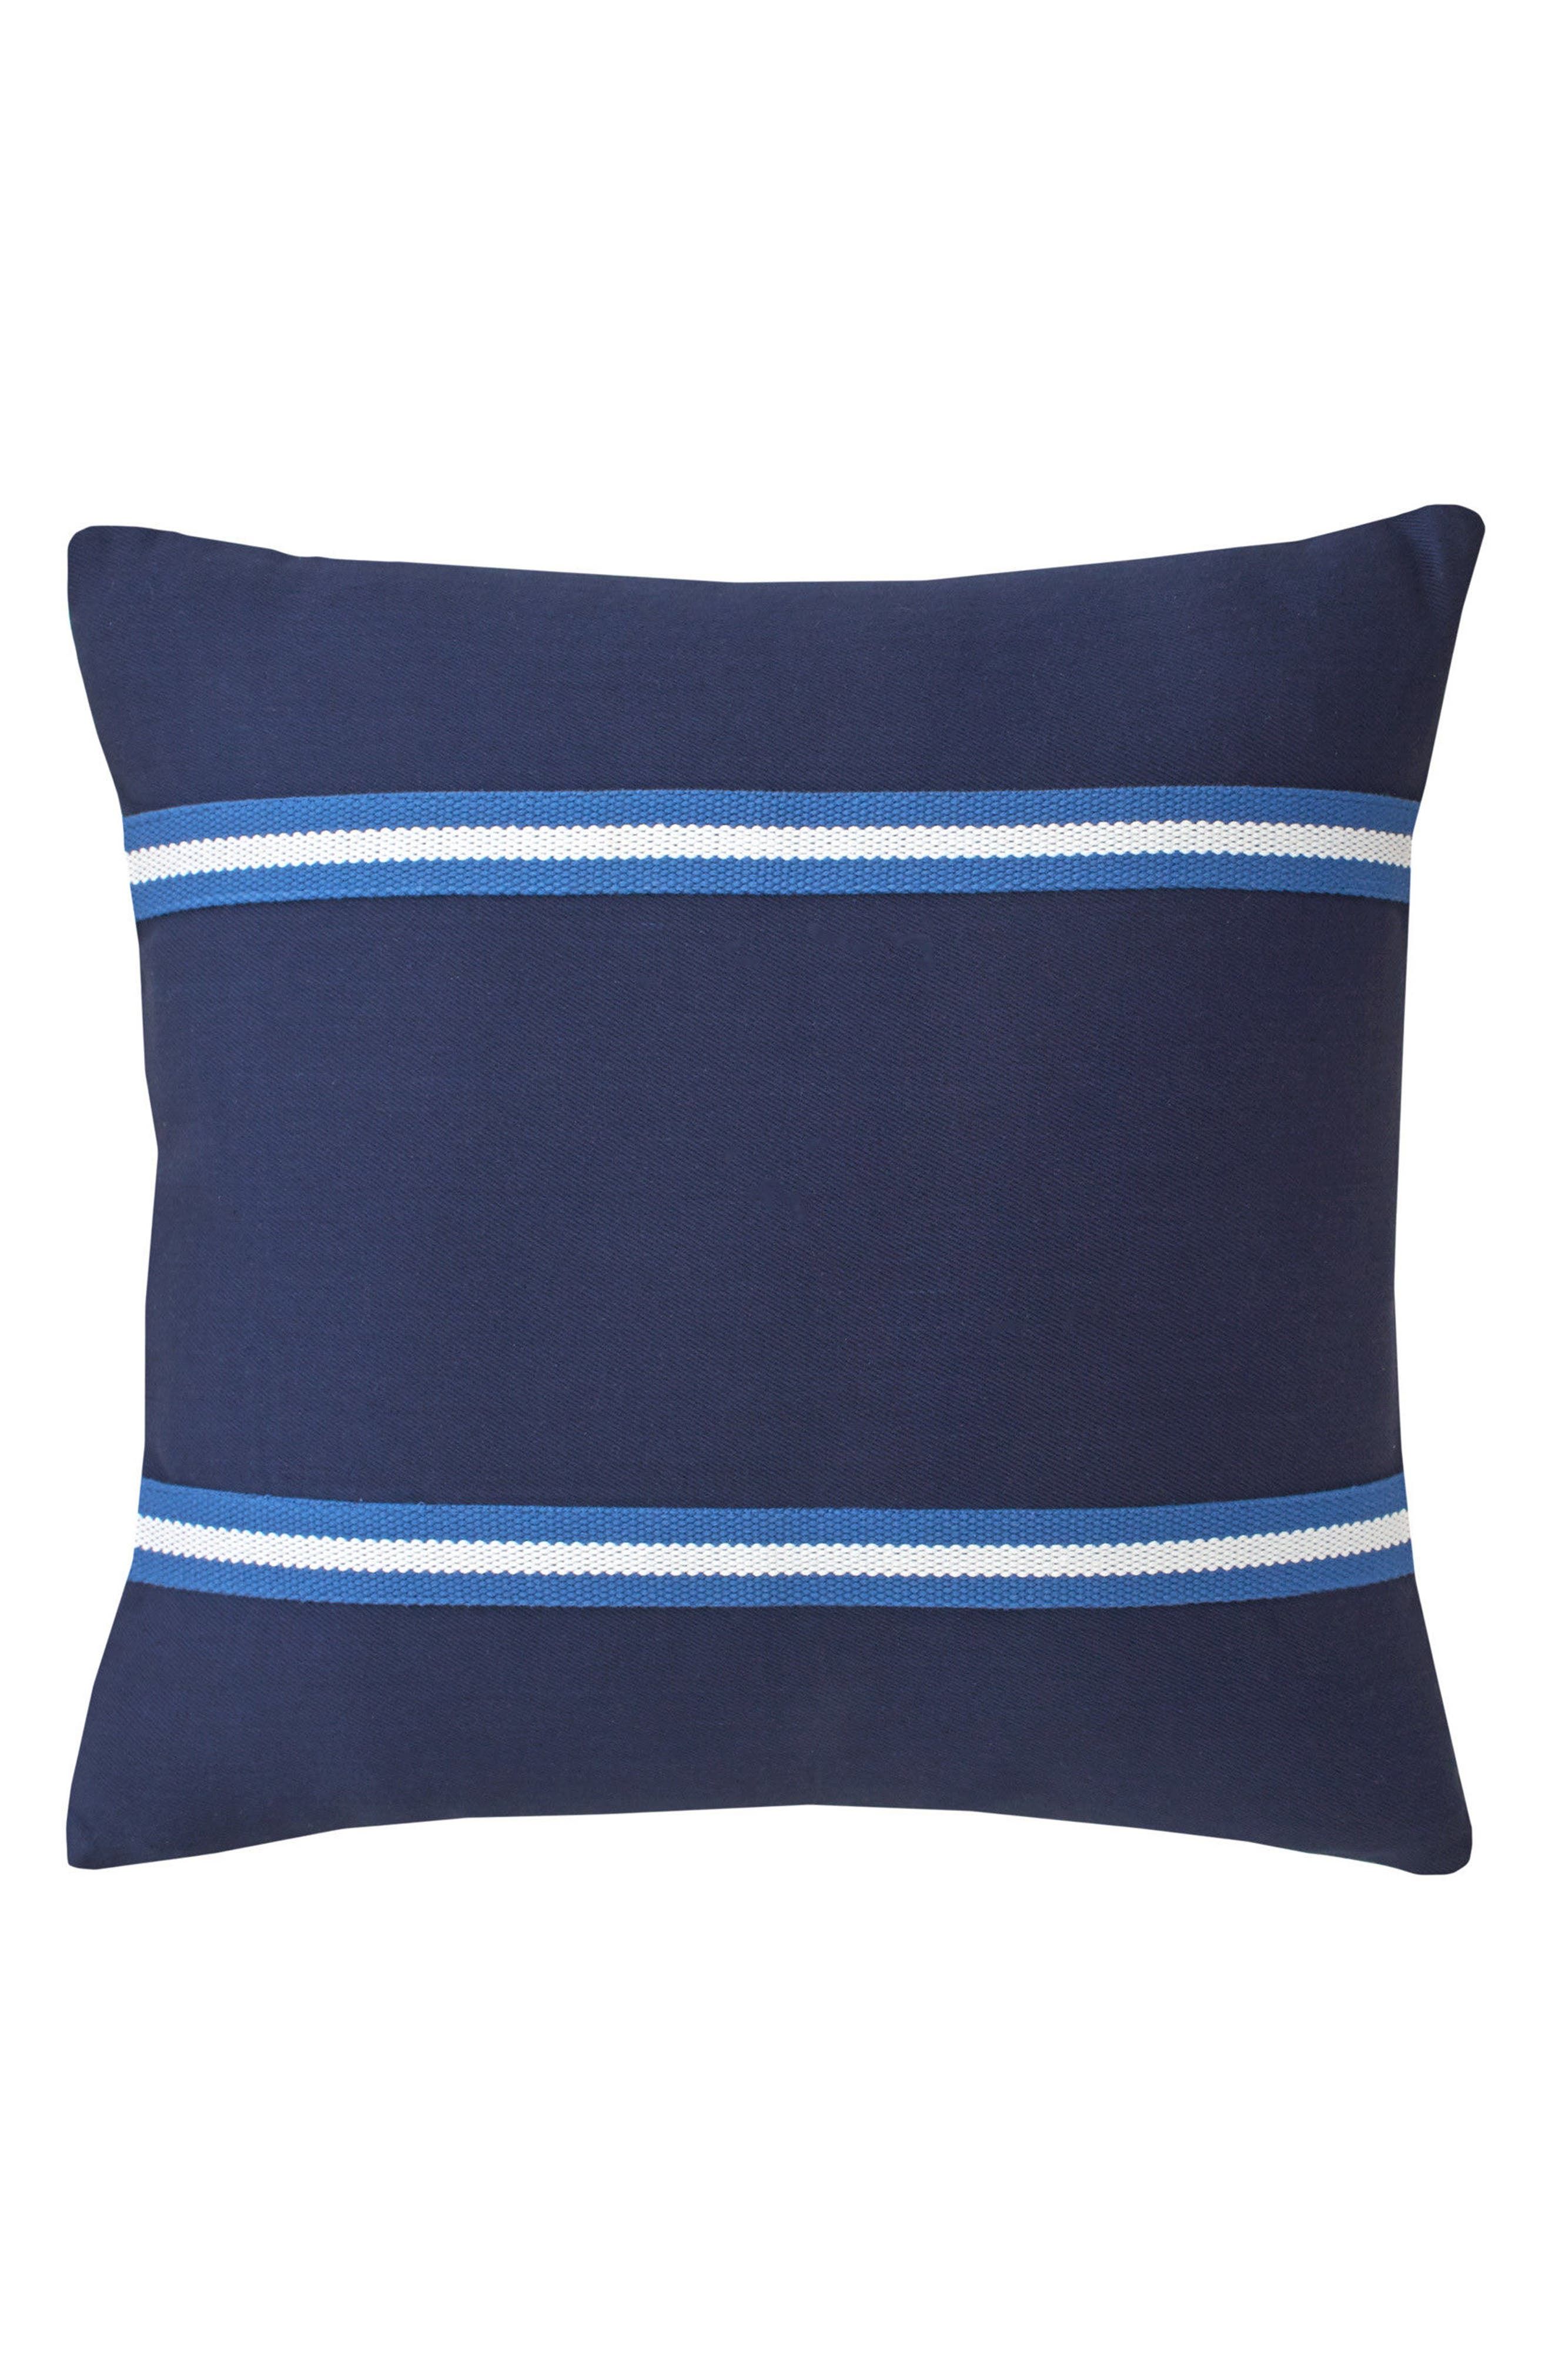 Dock Street Stripe Tape Accent Pillow,                         Main,                         color, Navy